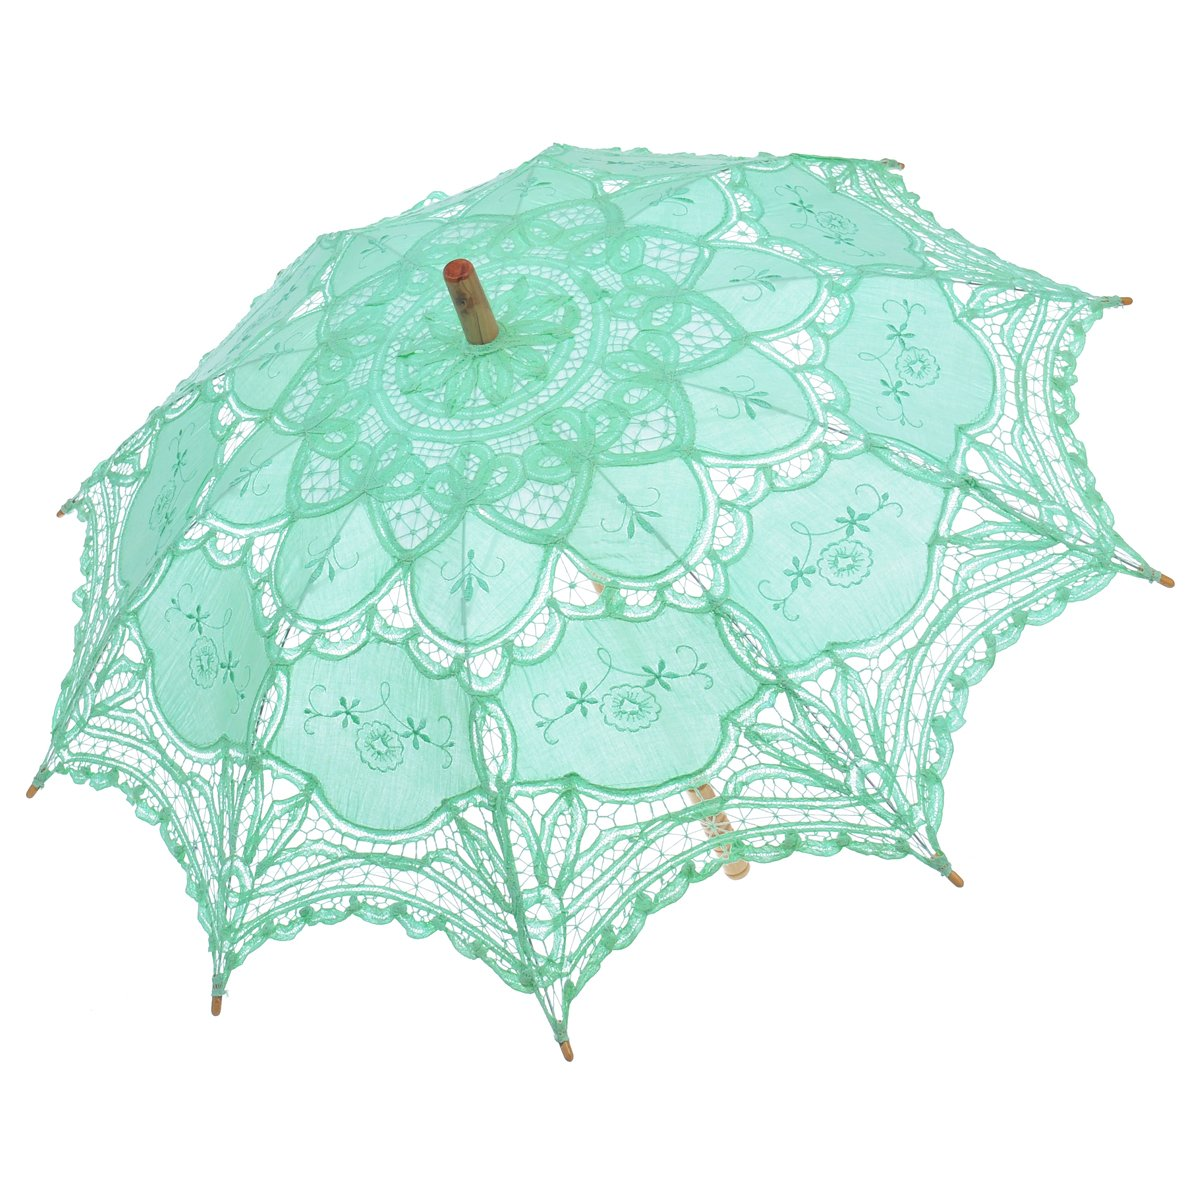 Remedios Ivory Bridal Wedding Cotton Lace Parasol Umbrella for Party Decoration 0